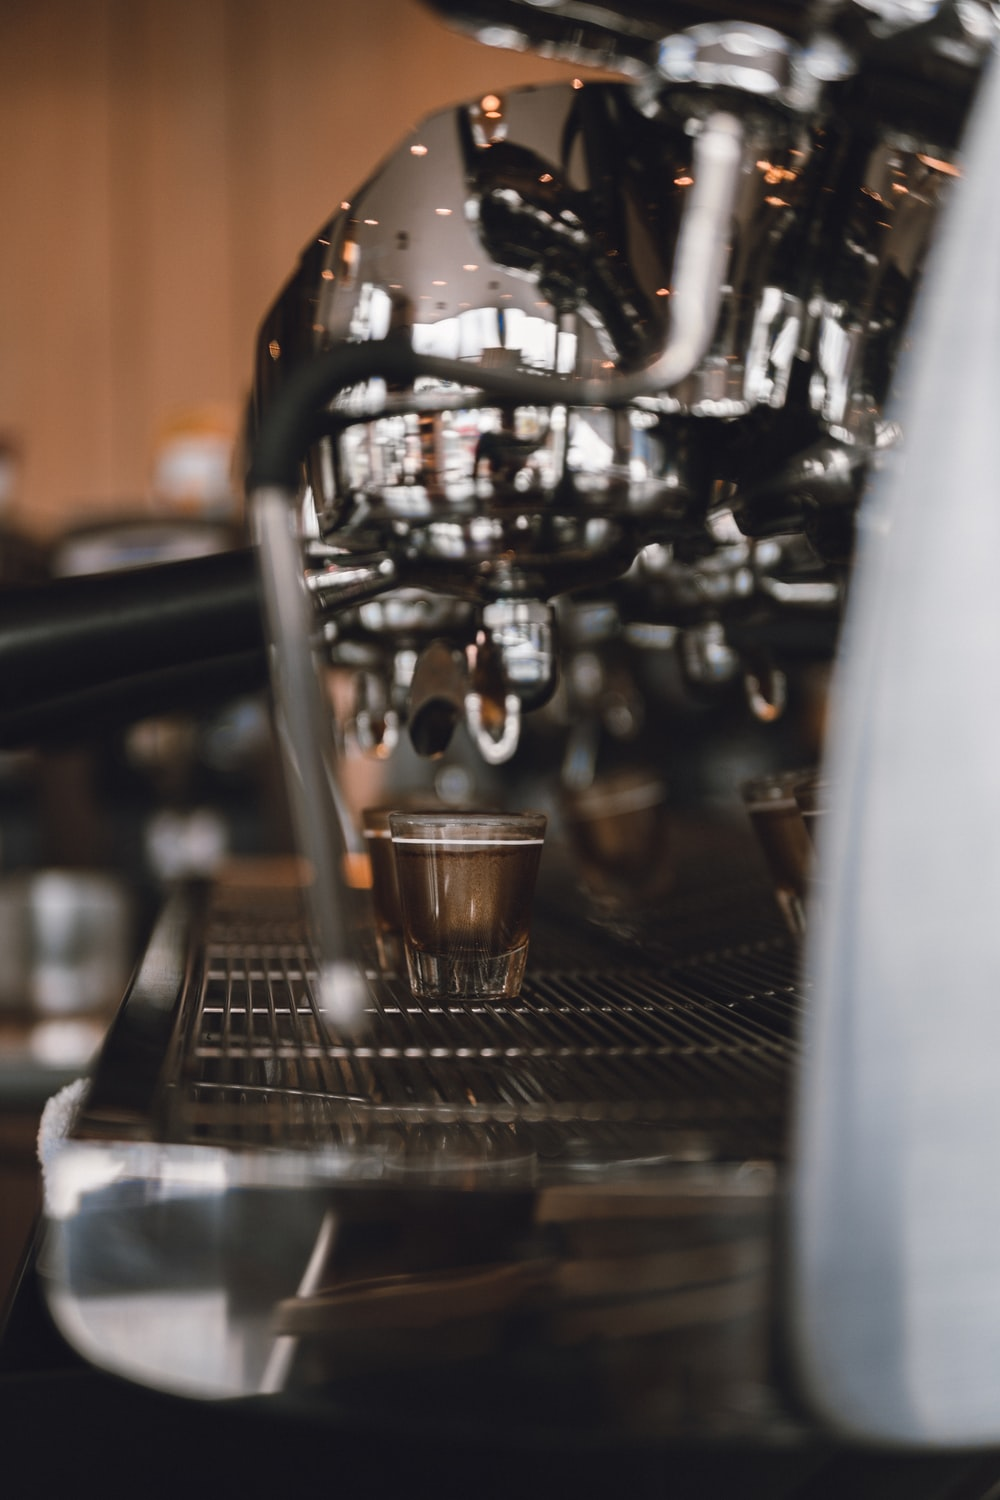 stainless steel espresso machine with clear drinking glass